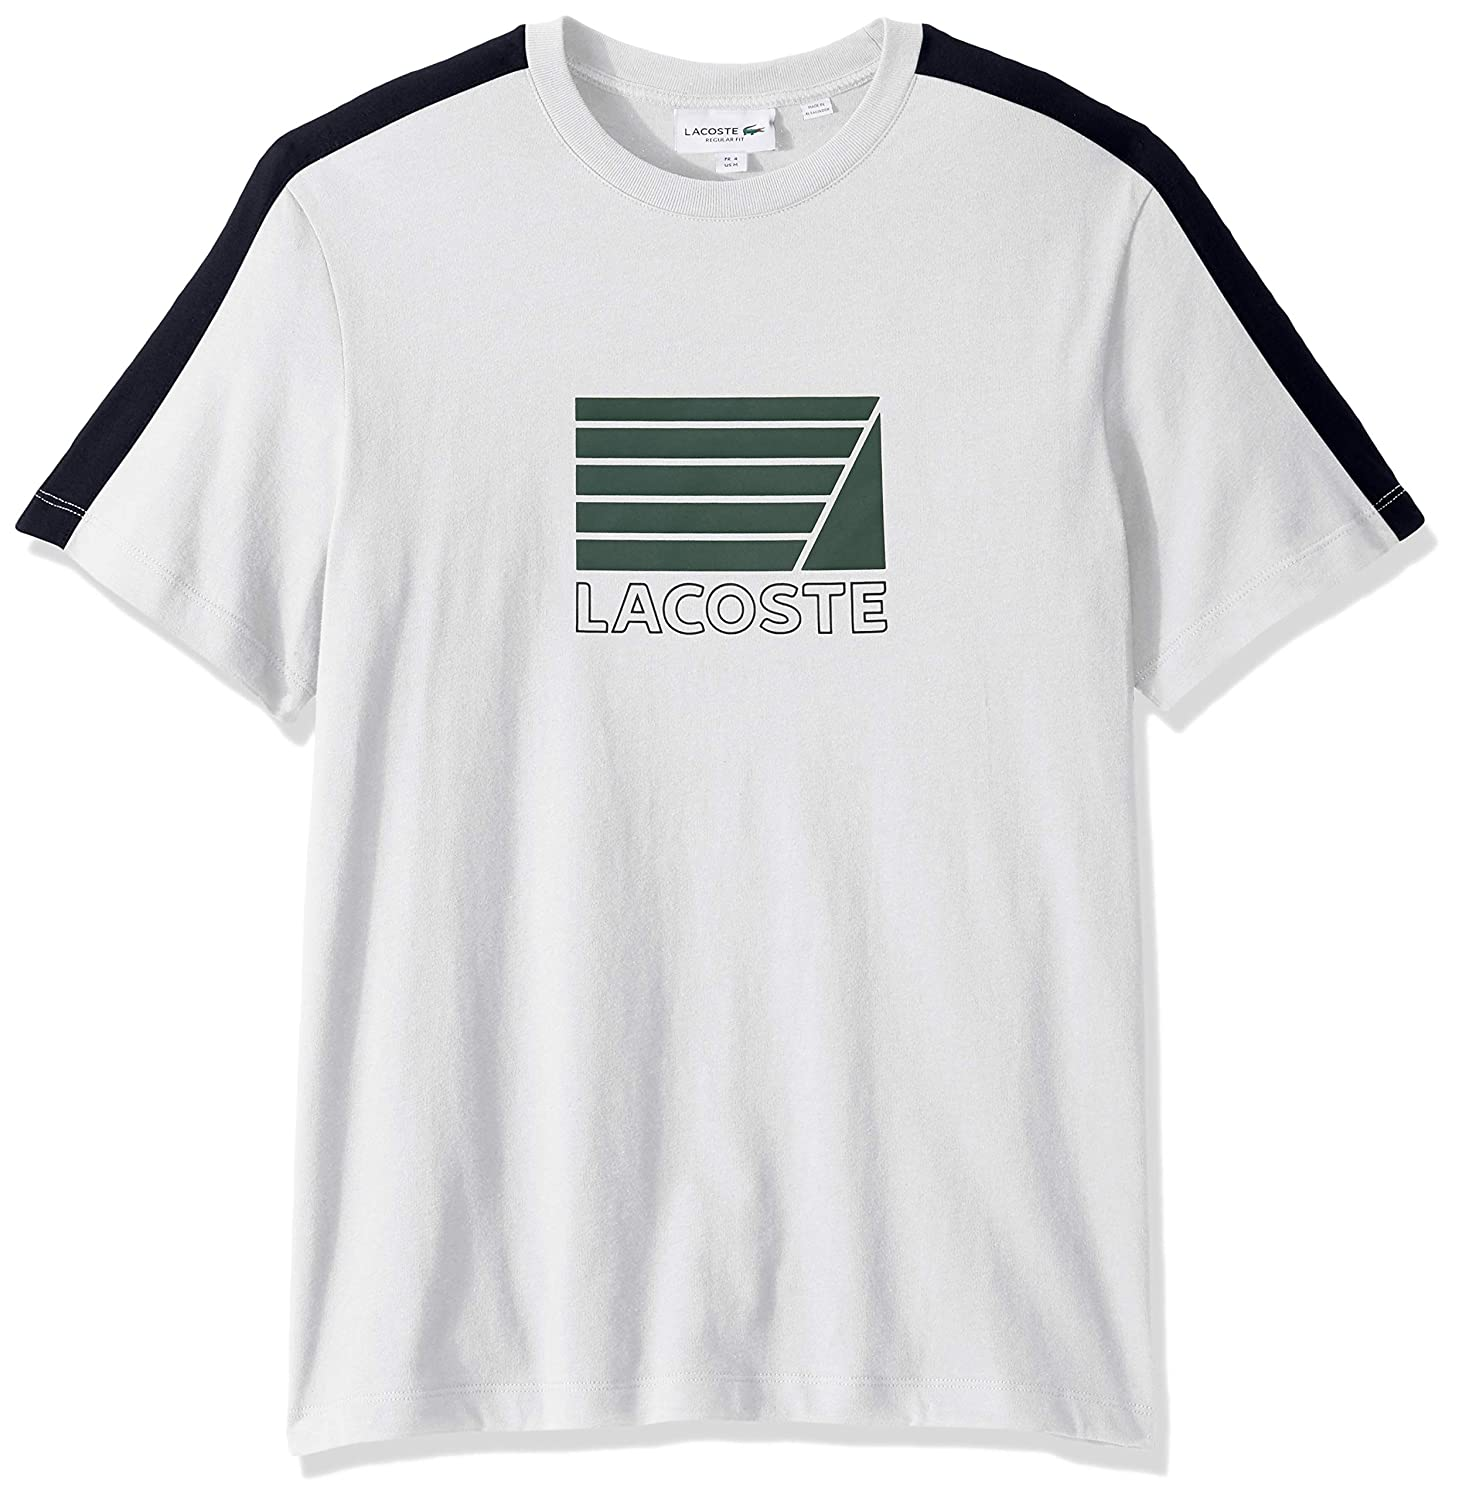 4XL Lacoste Mens S//S Jersey with FRAPHIC ADJOVOKIC Stripe Sleeve T-Shirt Shirt White//Navy Blue